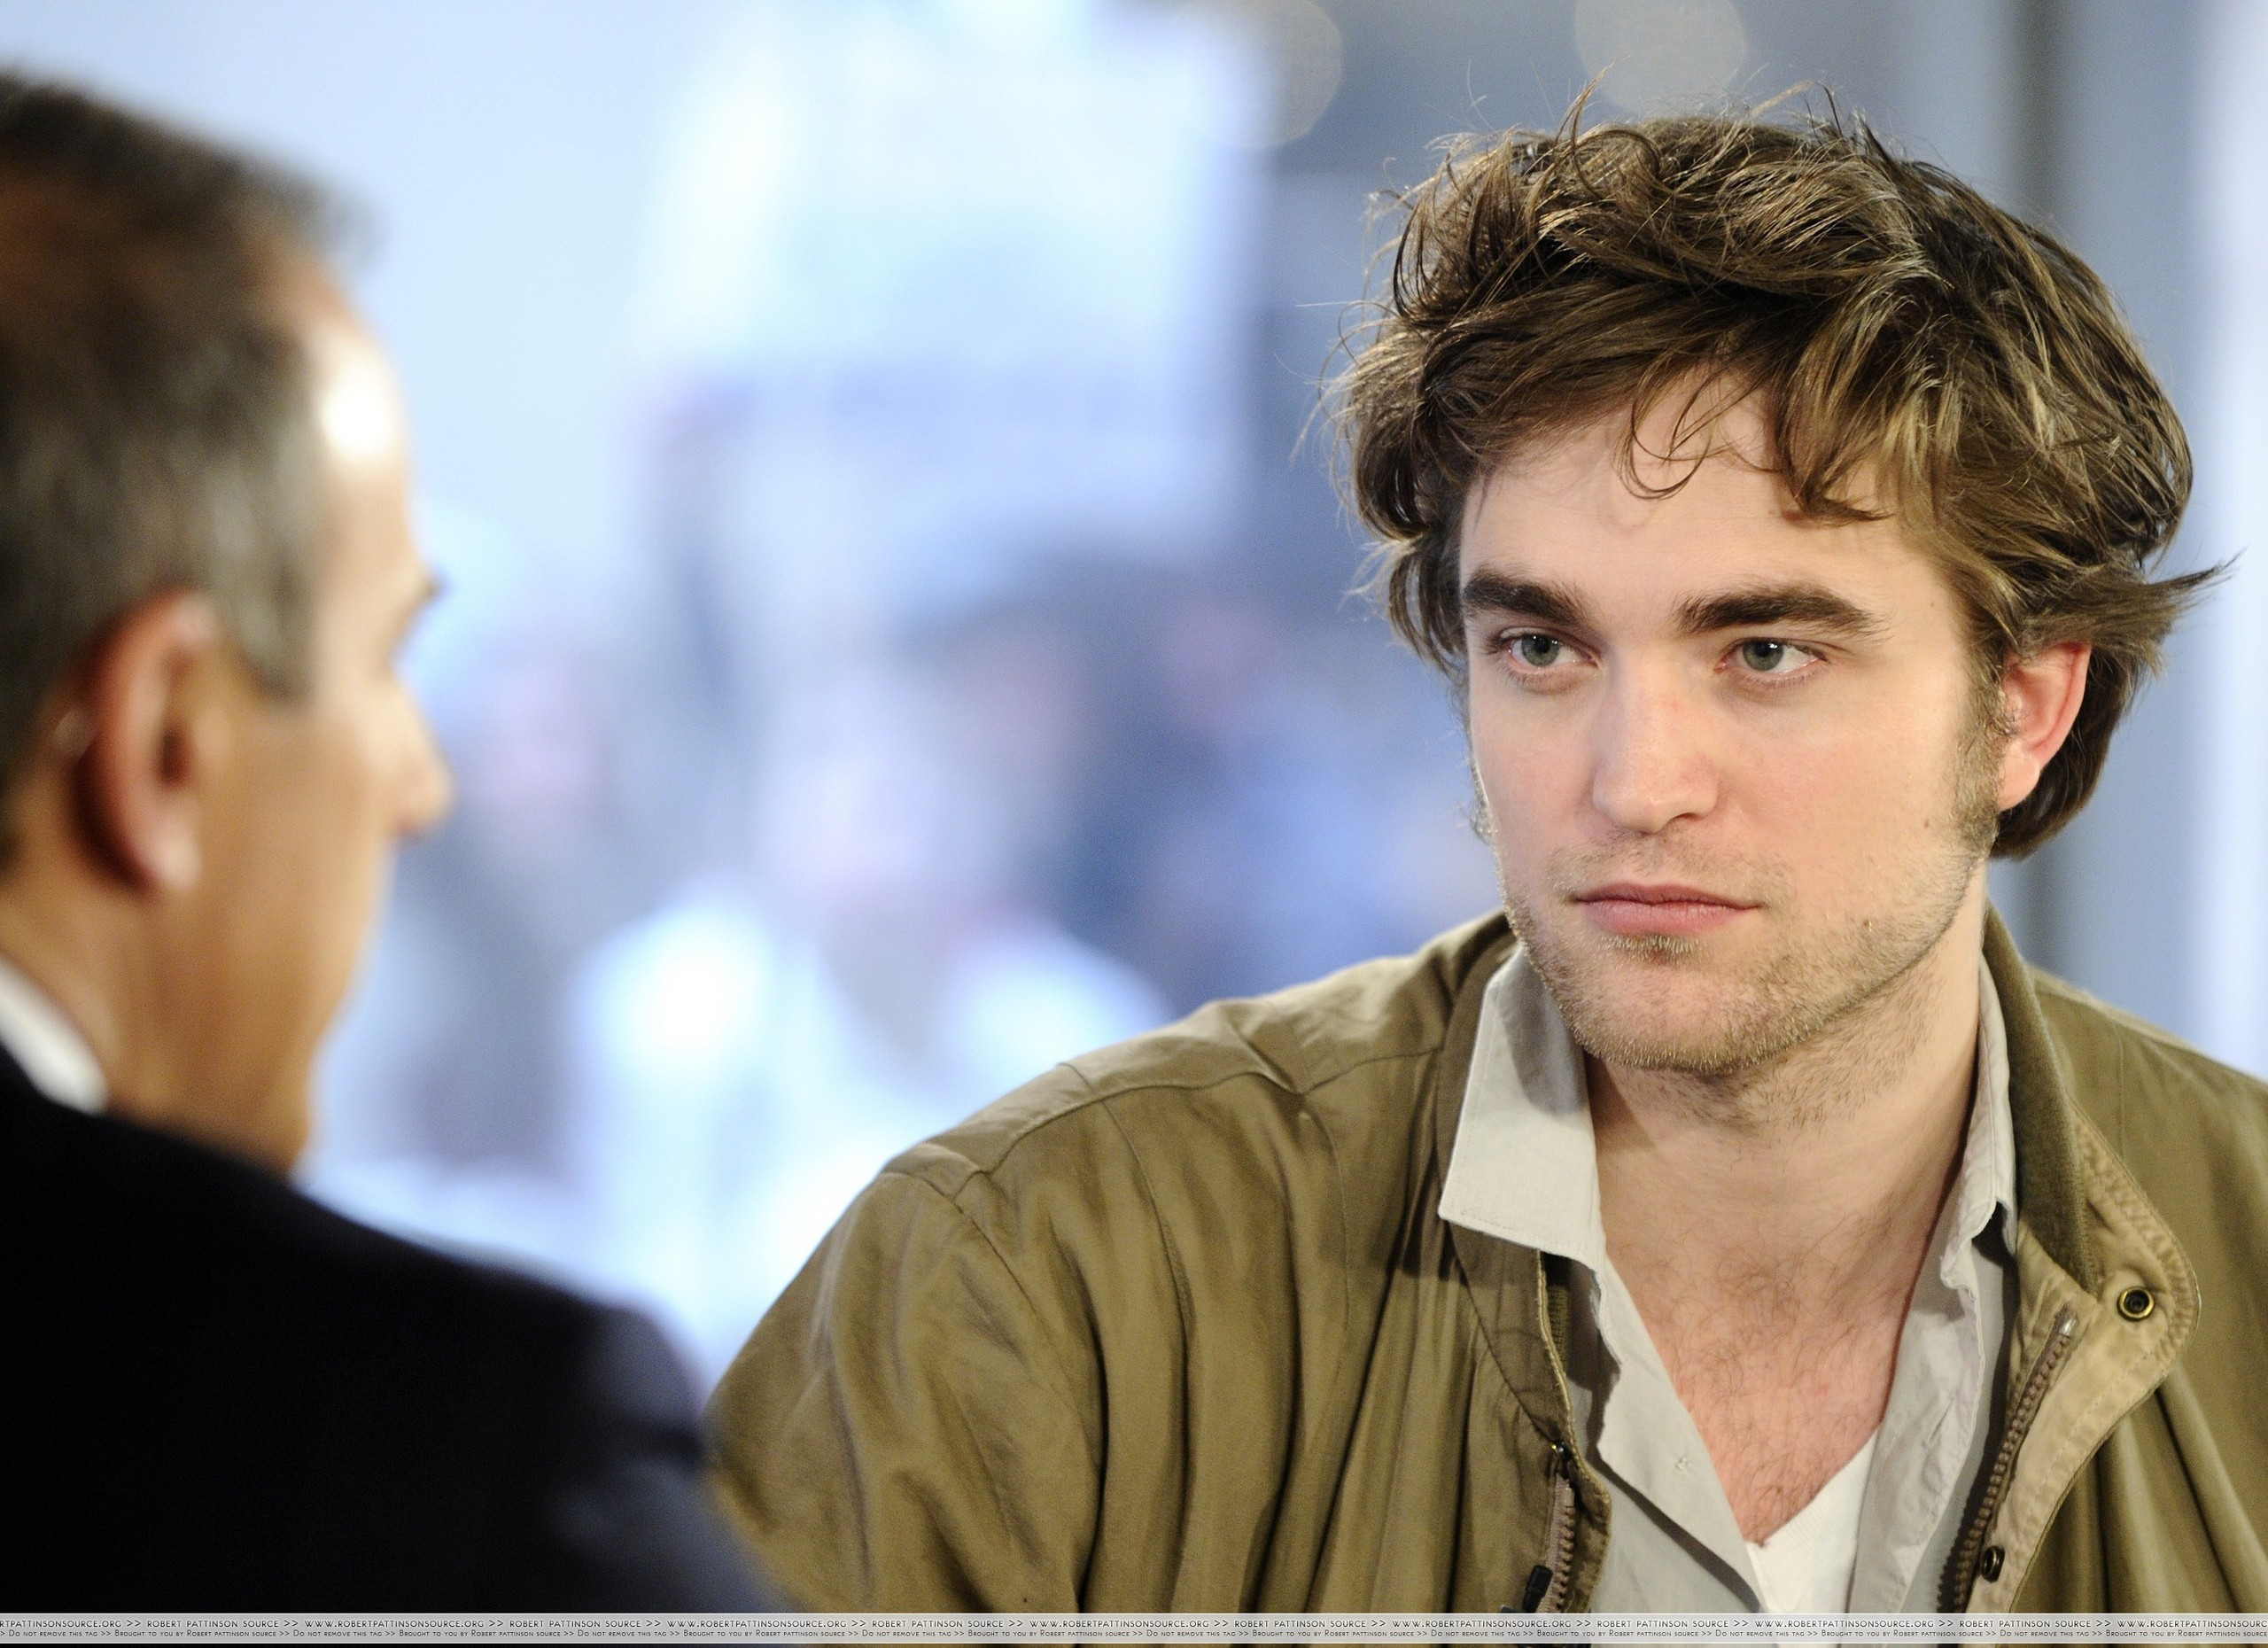 """HQ चित्रो Of Robert Pattinson On """"The Today Show"""""""